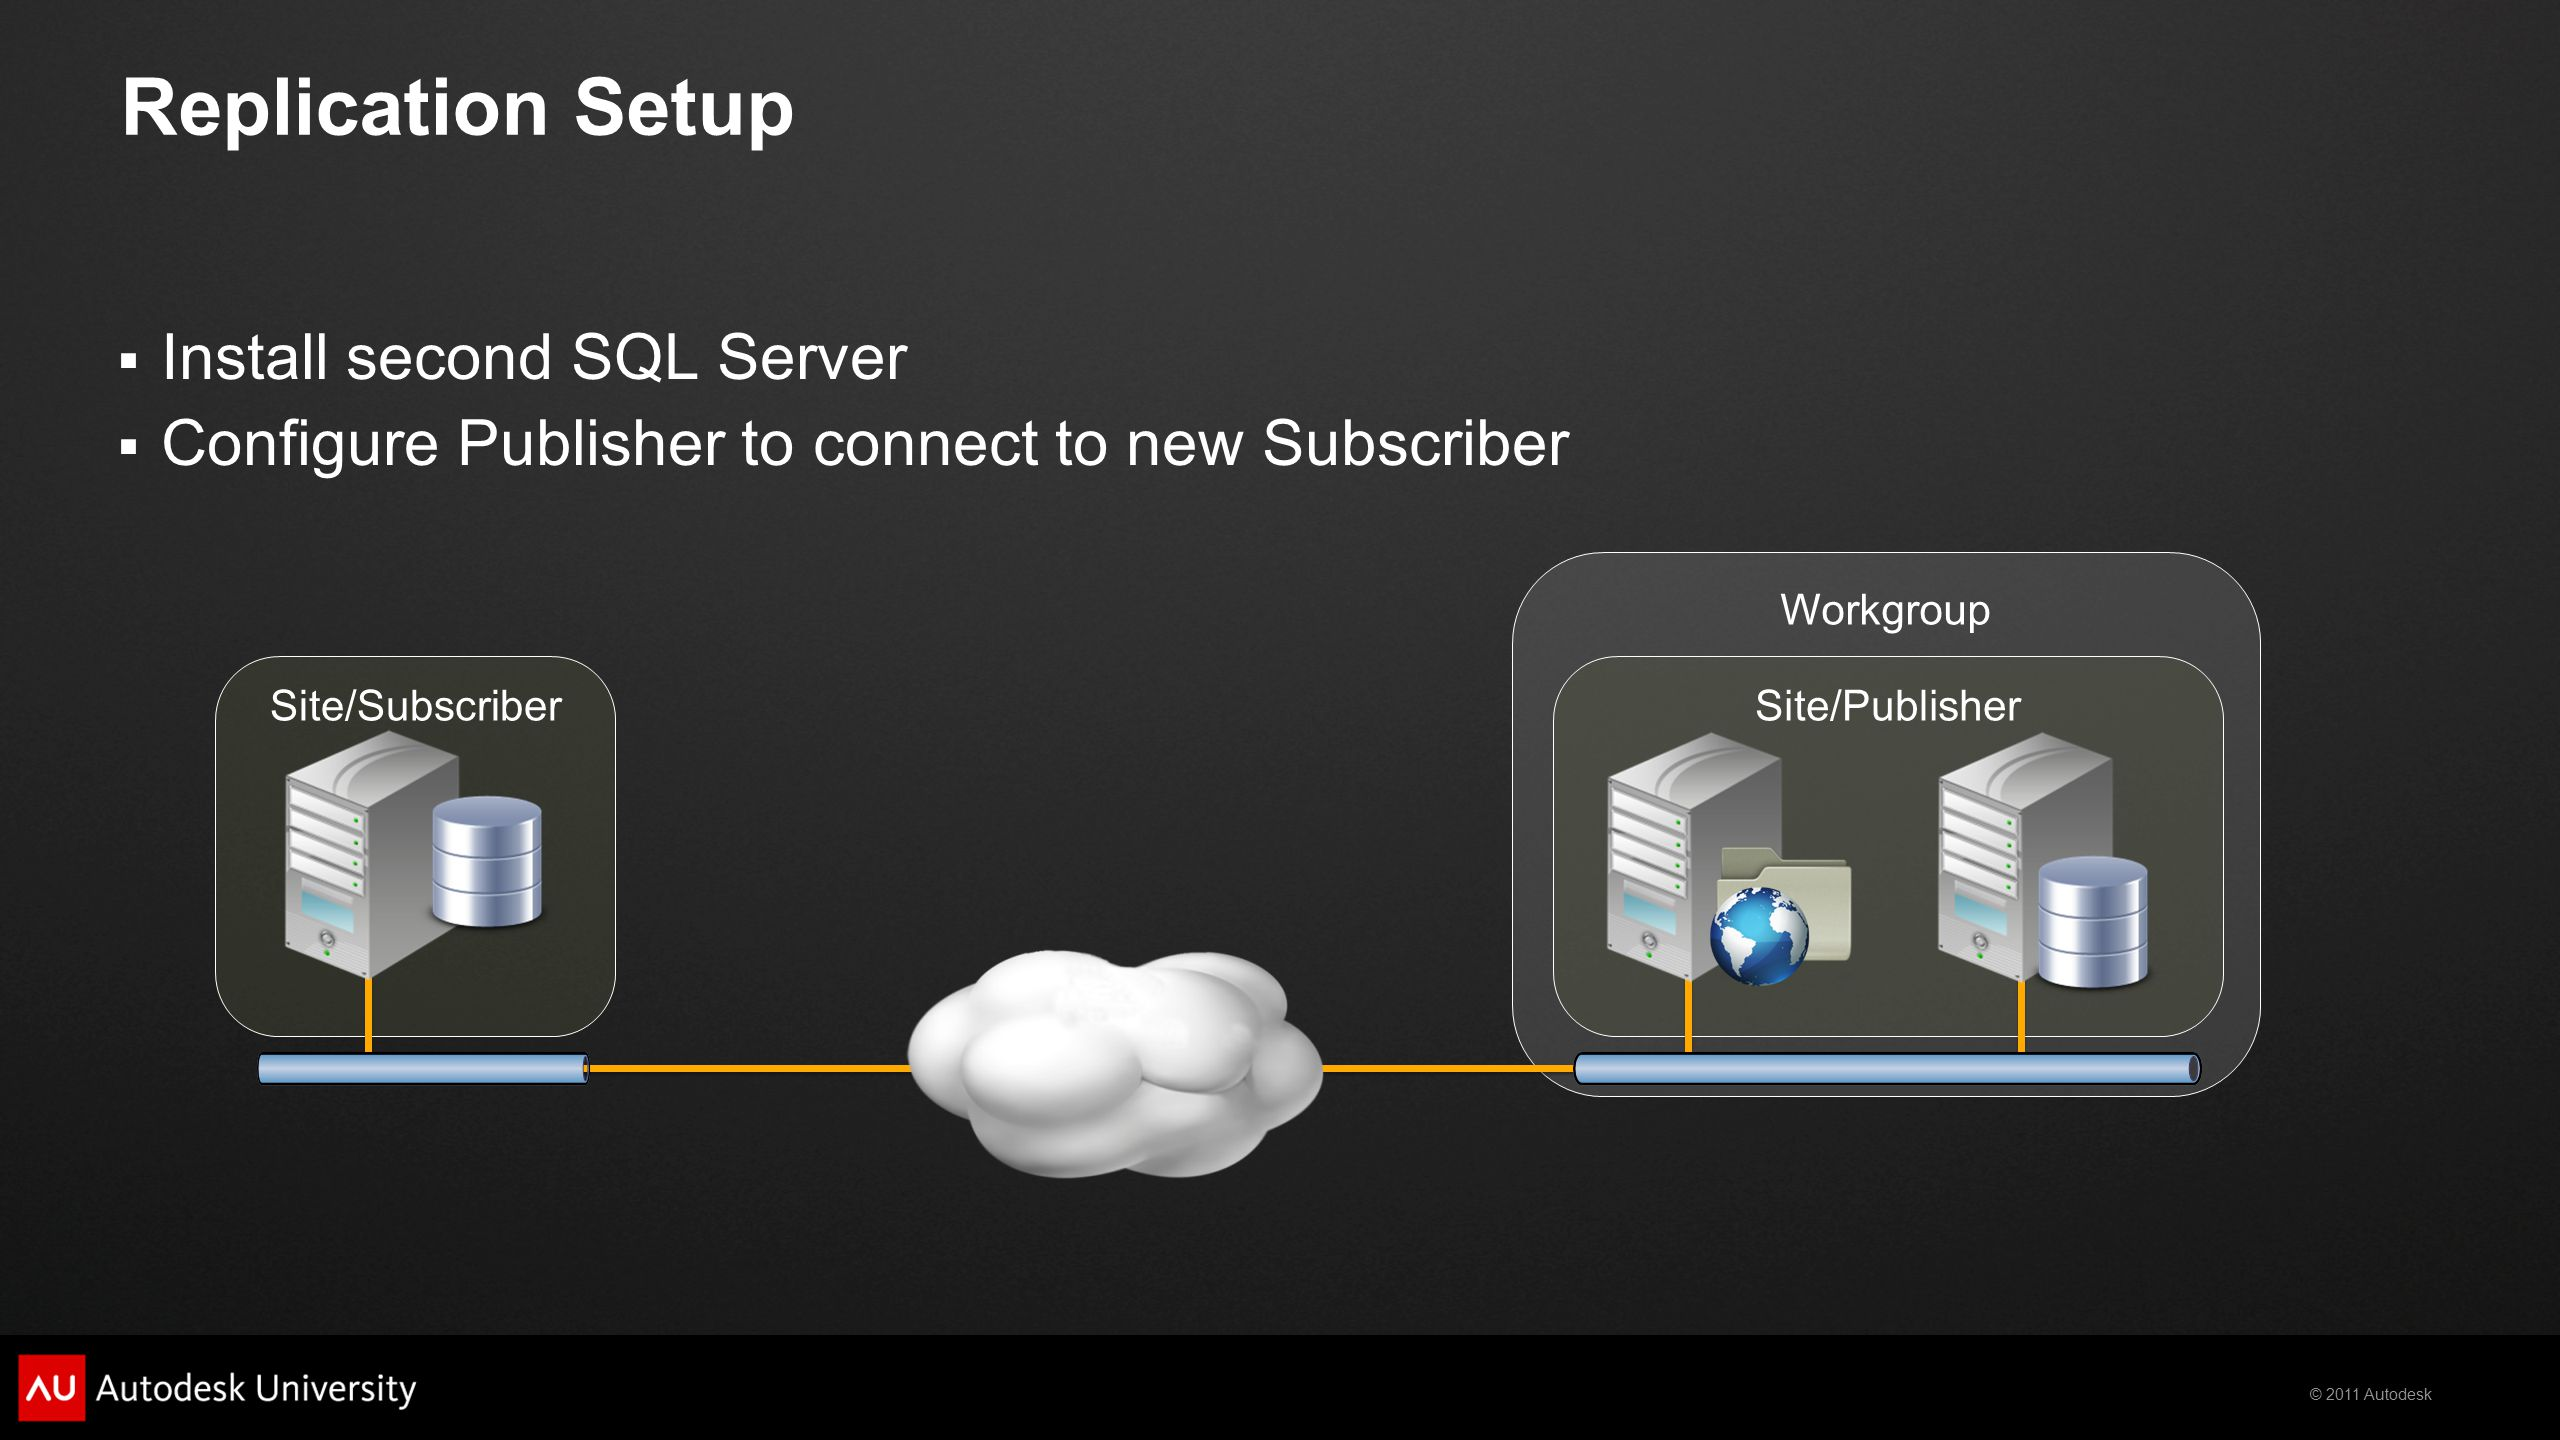 © 2011 Autodesk Replication Setup  Install second SQL Server  Configure Publisher to connect to new Subscriber Workgroup Site/PublisherSite/Subscriber